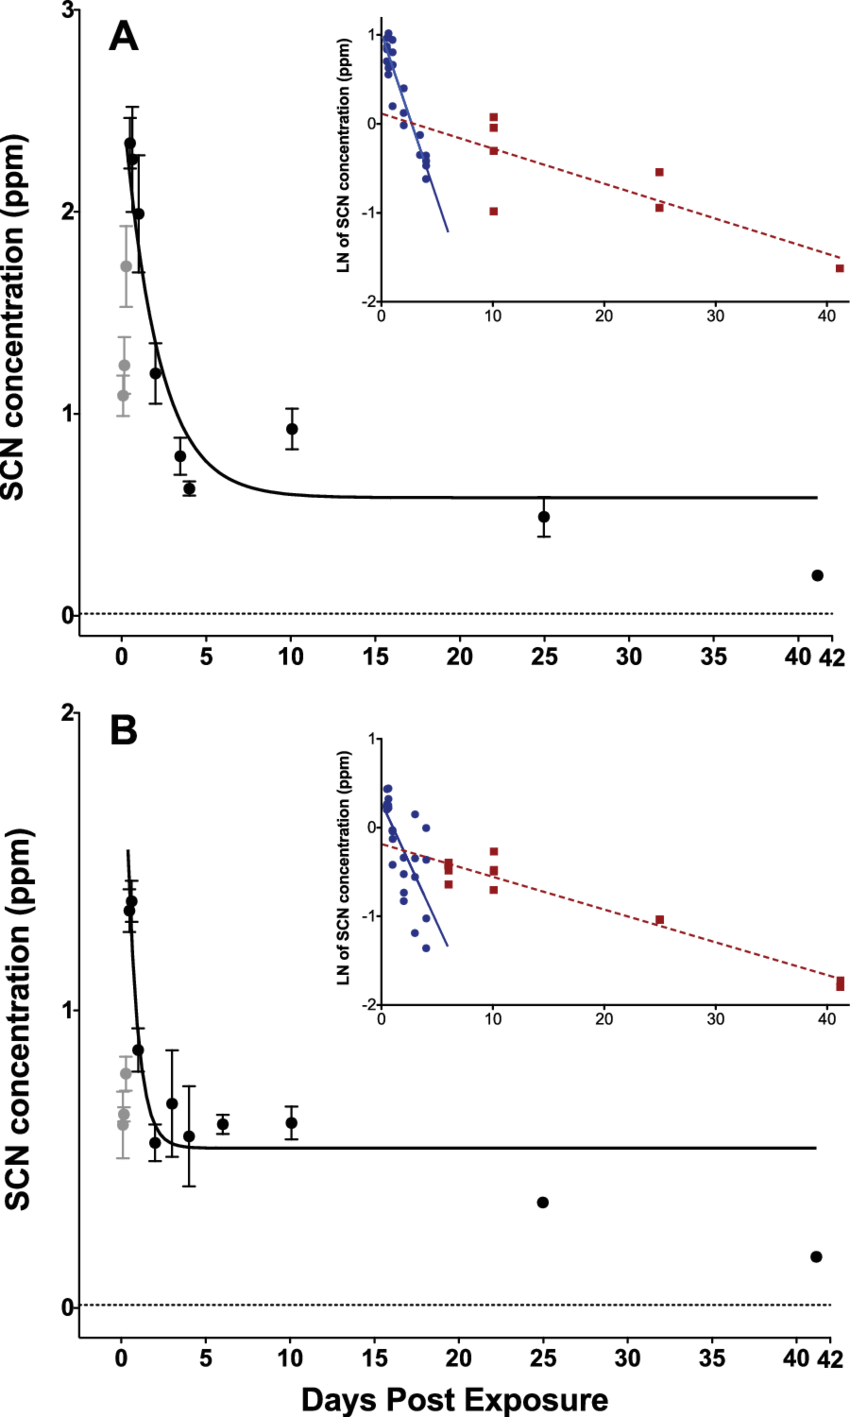 medium resolution of depuration curves for plasma scn concentration in amphiprion ocellaris after exposure to 50 ppm cyanide